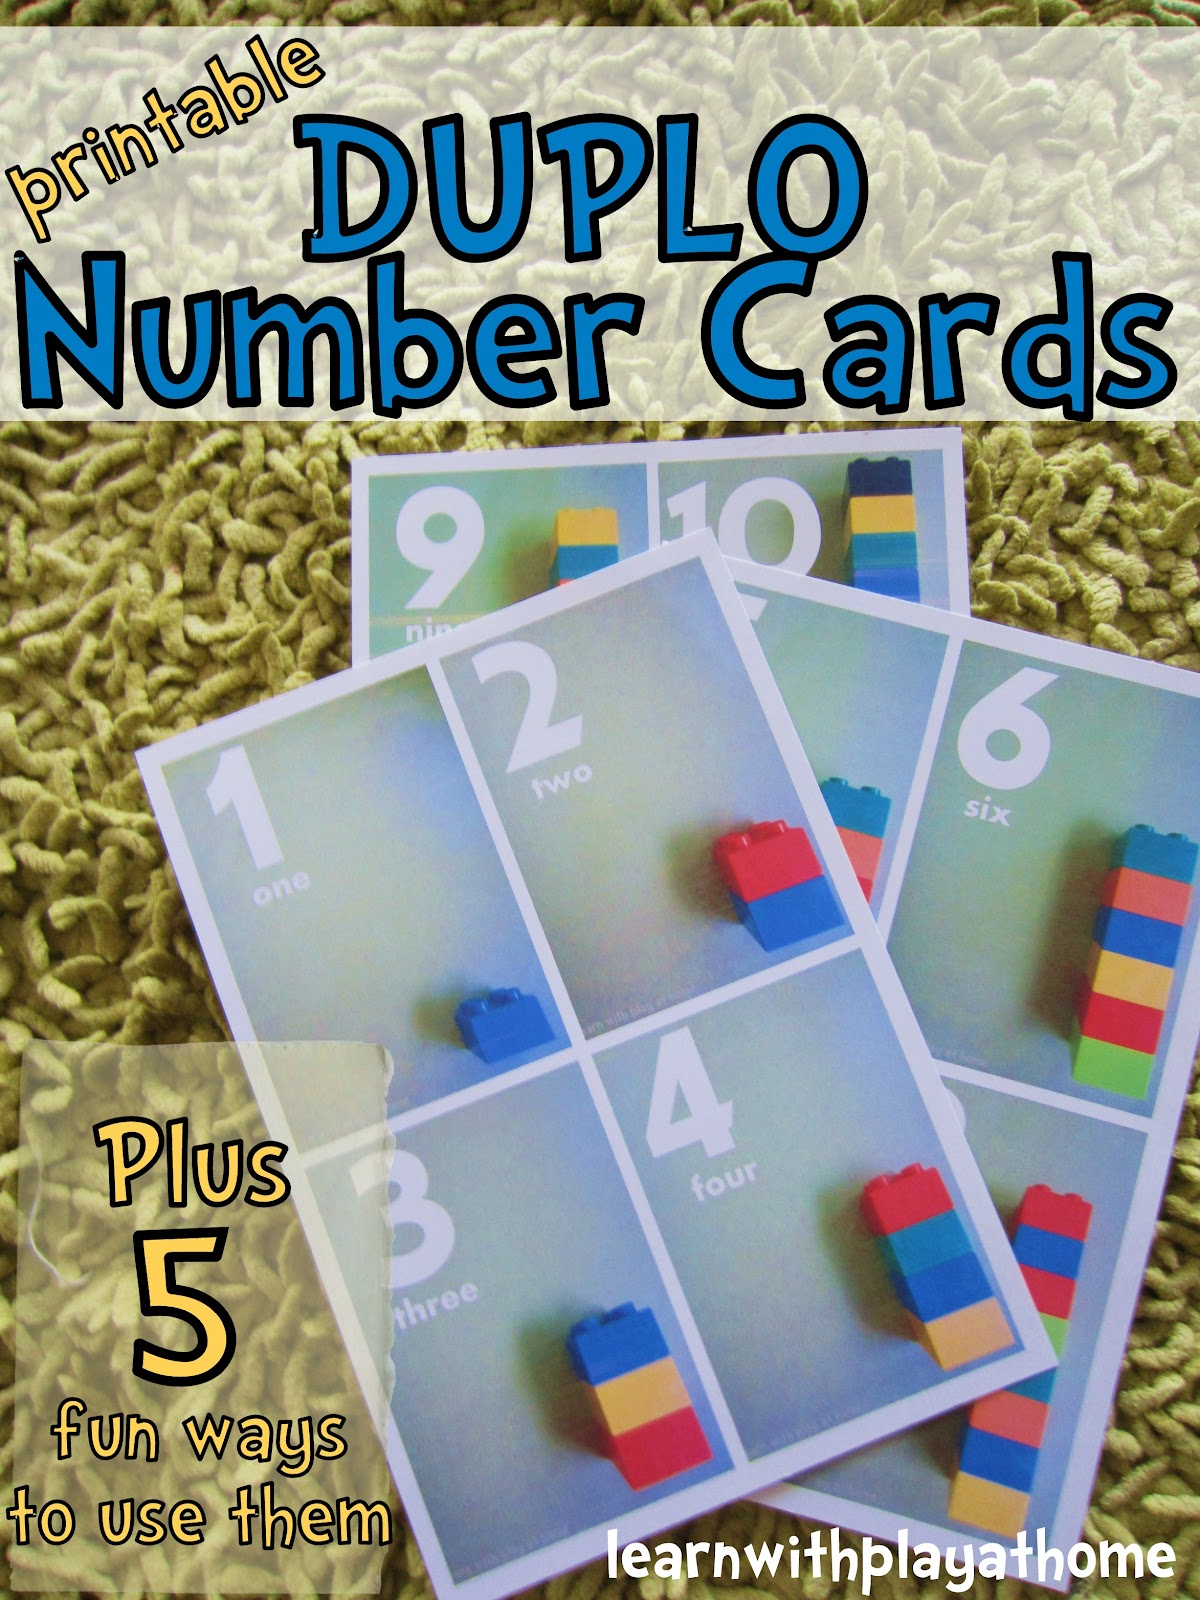 Learn With Play At Home Printable Duplo Number Cards Plus 5 Fun Ways To Use Them